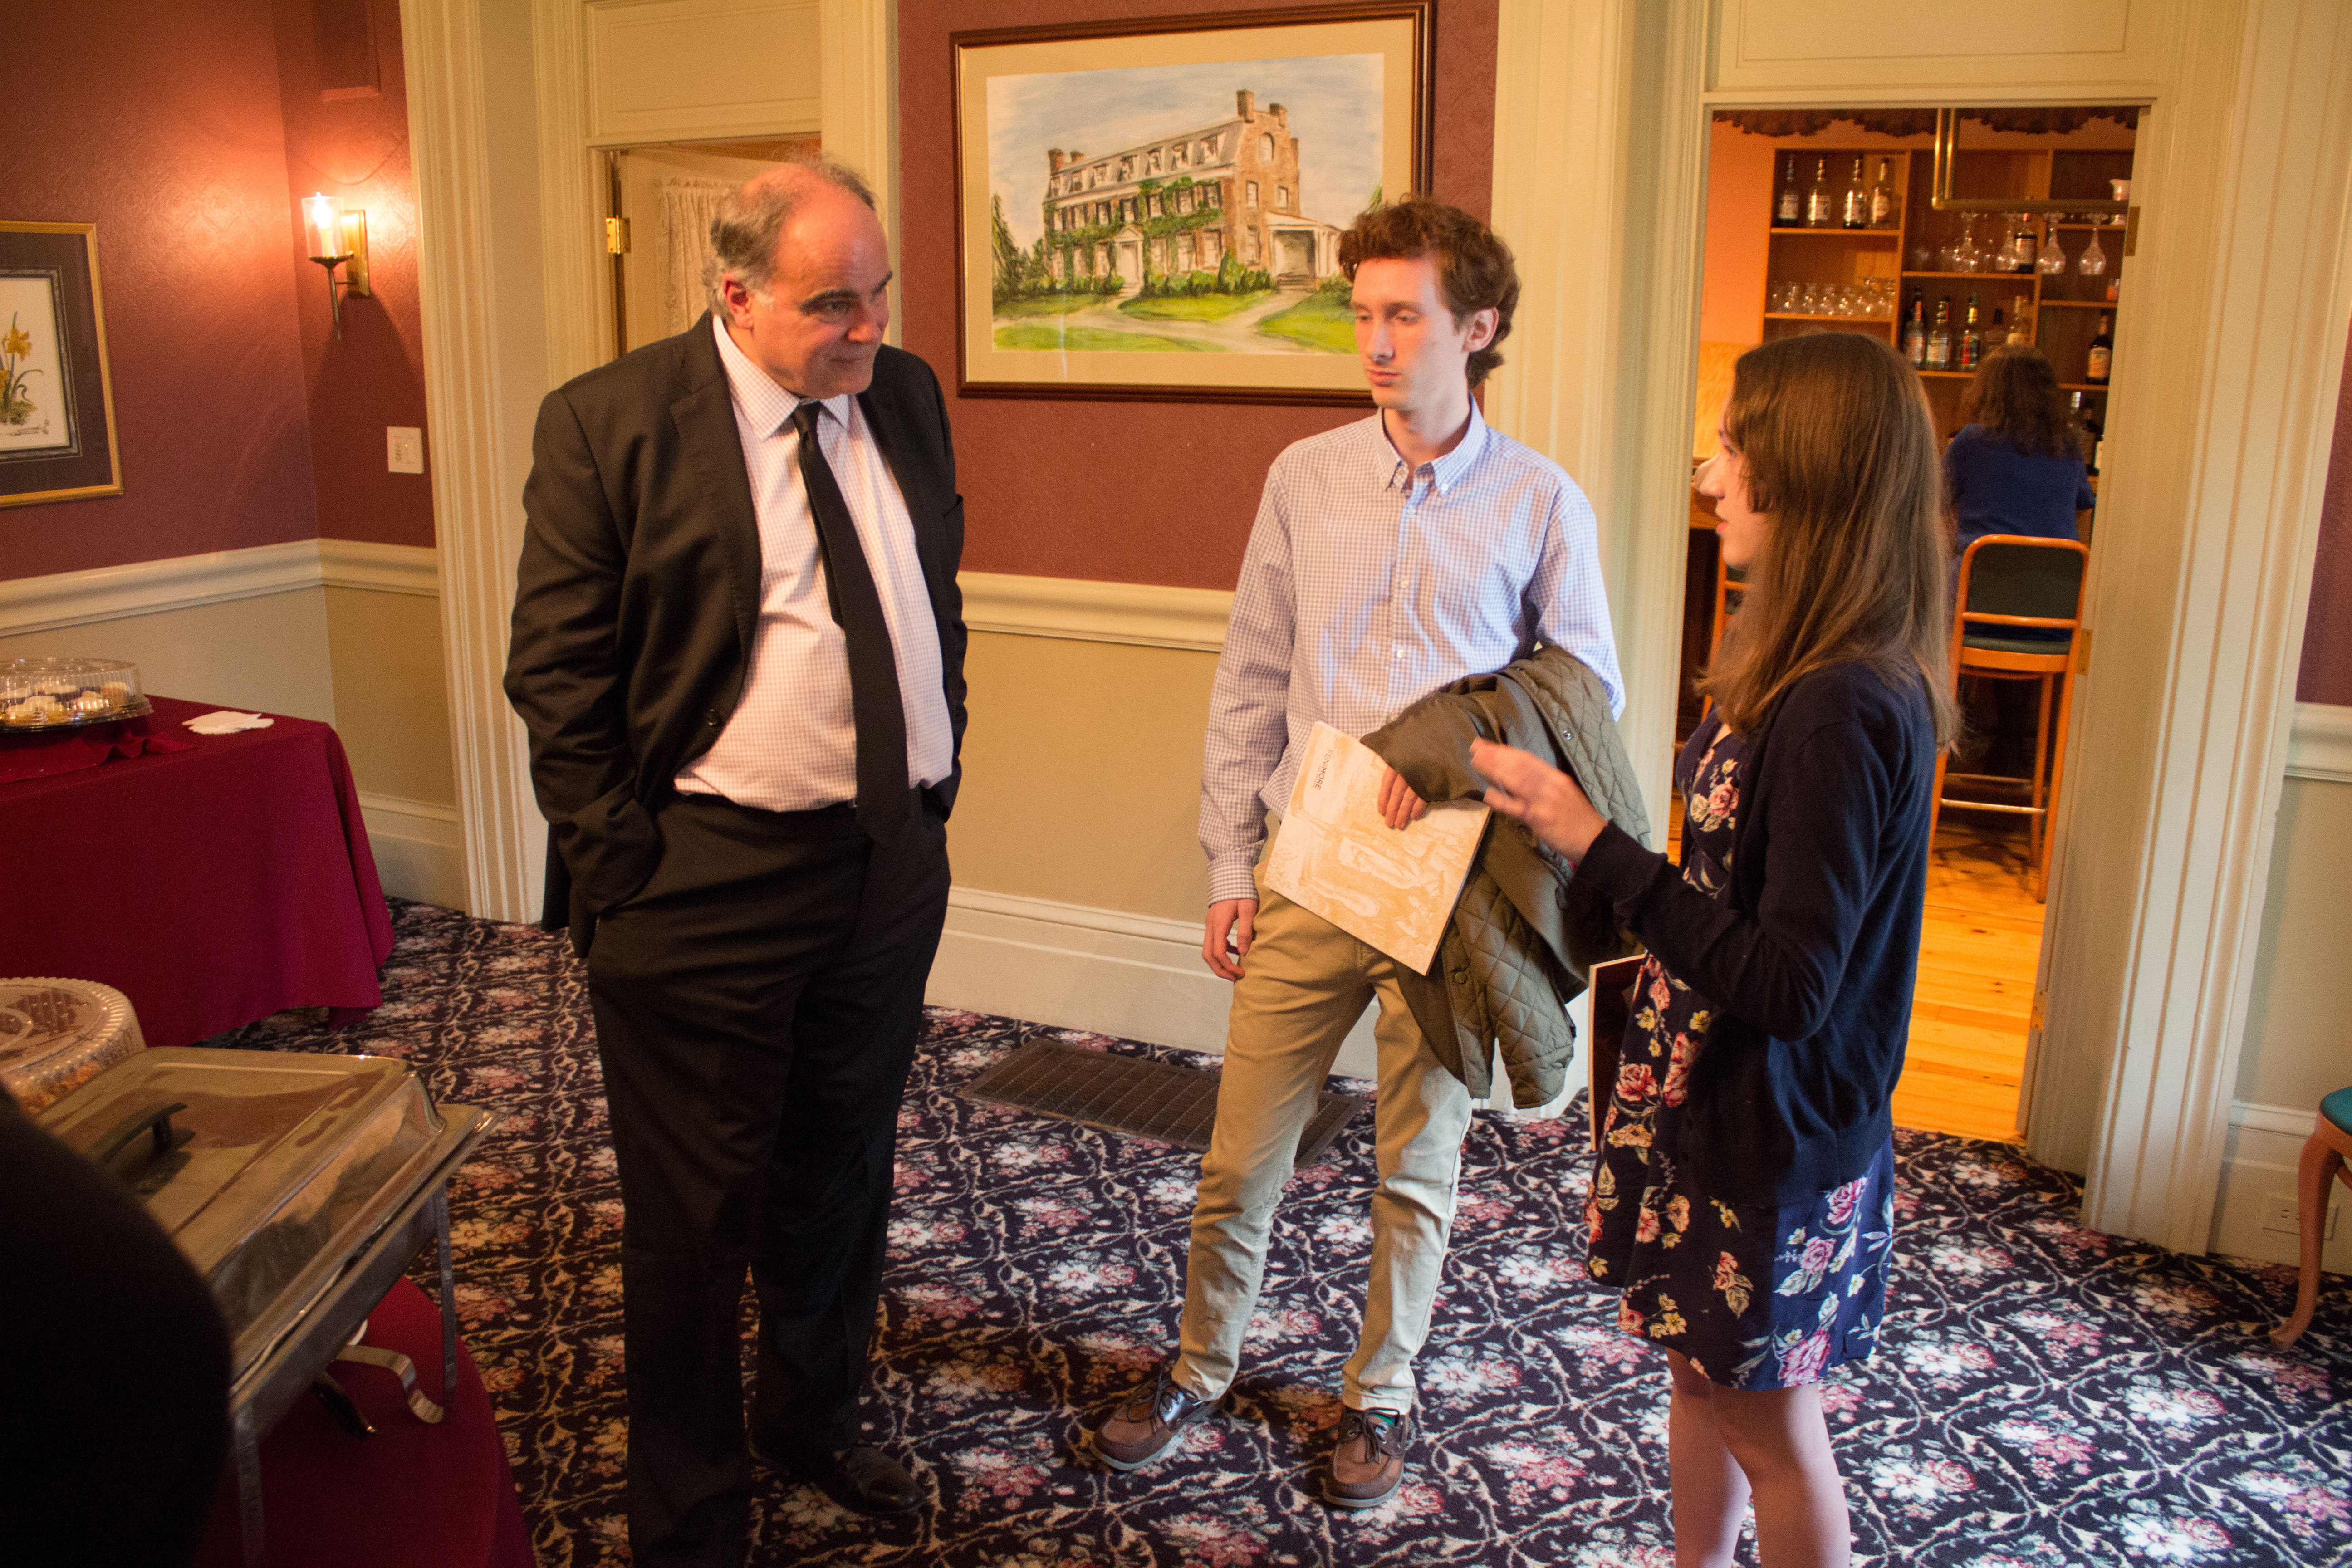 AHI President Robert Paquette with Cas Zablotski and Canisius student Charlotte Kacprowicz